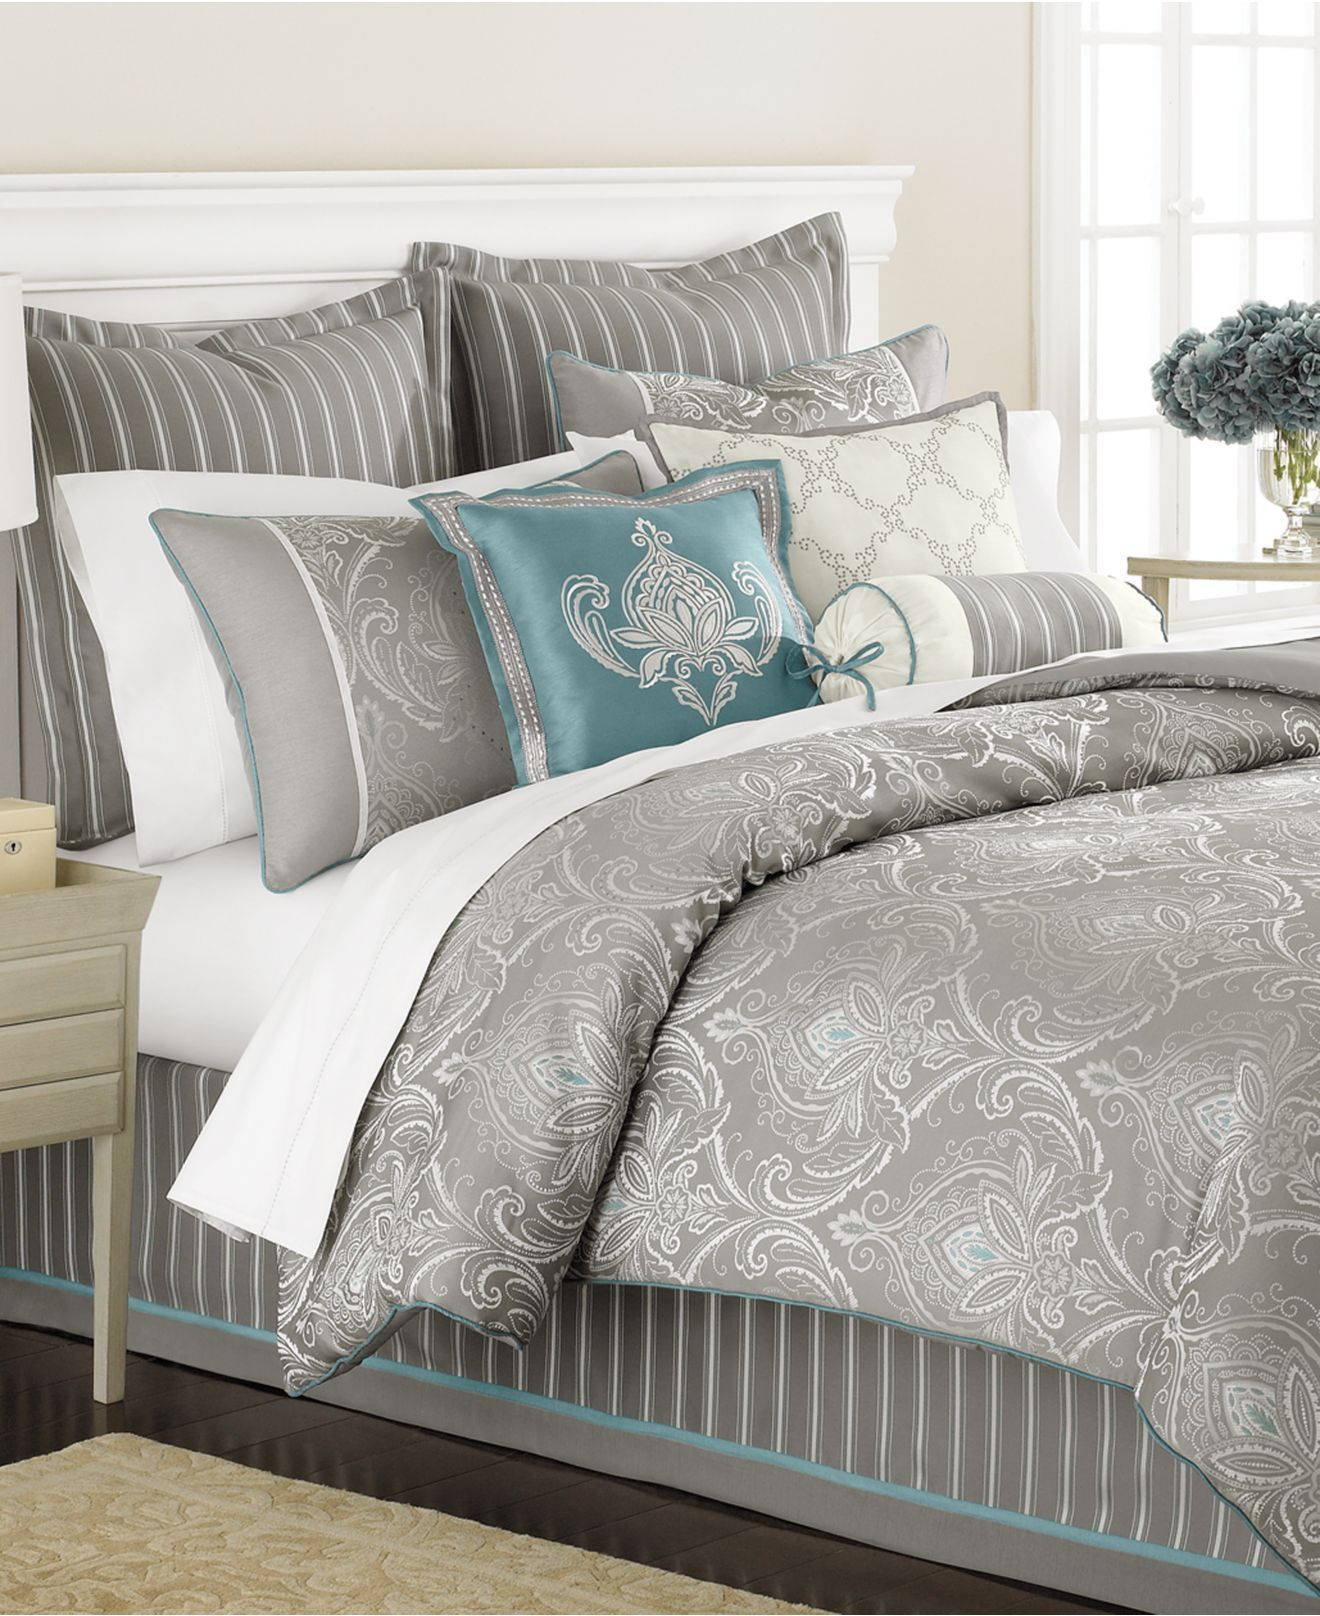 Martha Stewart Collection Bedding, Briercrest 9 Piece Comforter Set ...